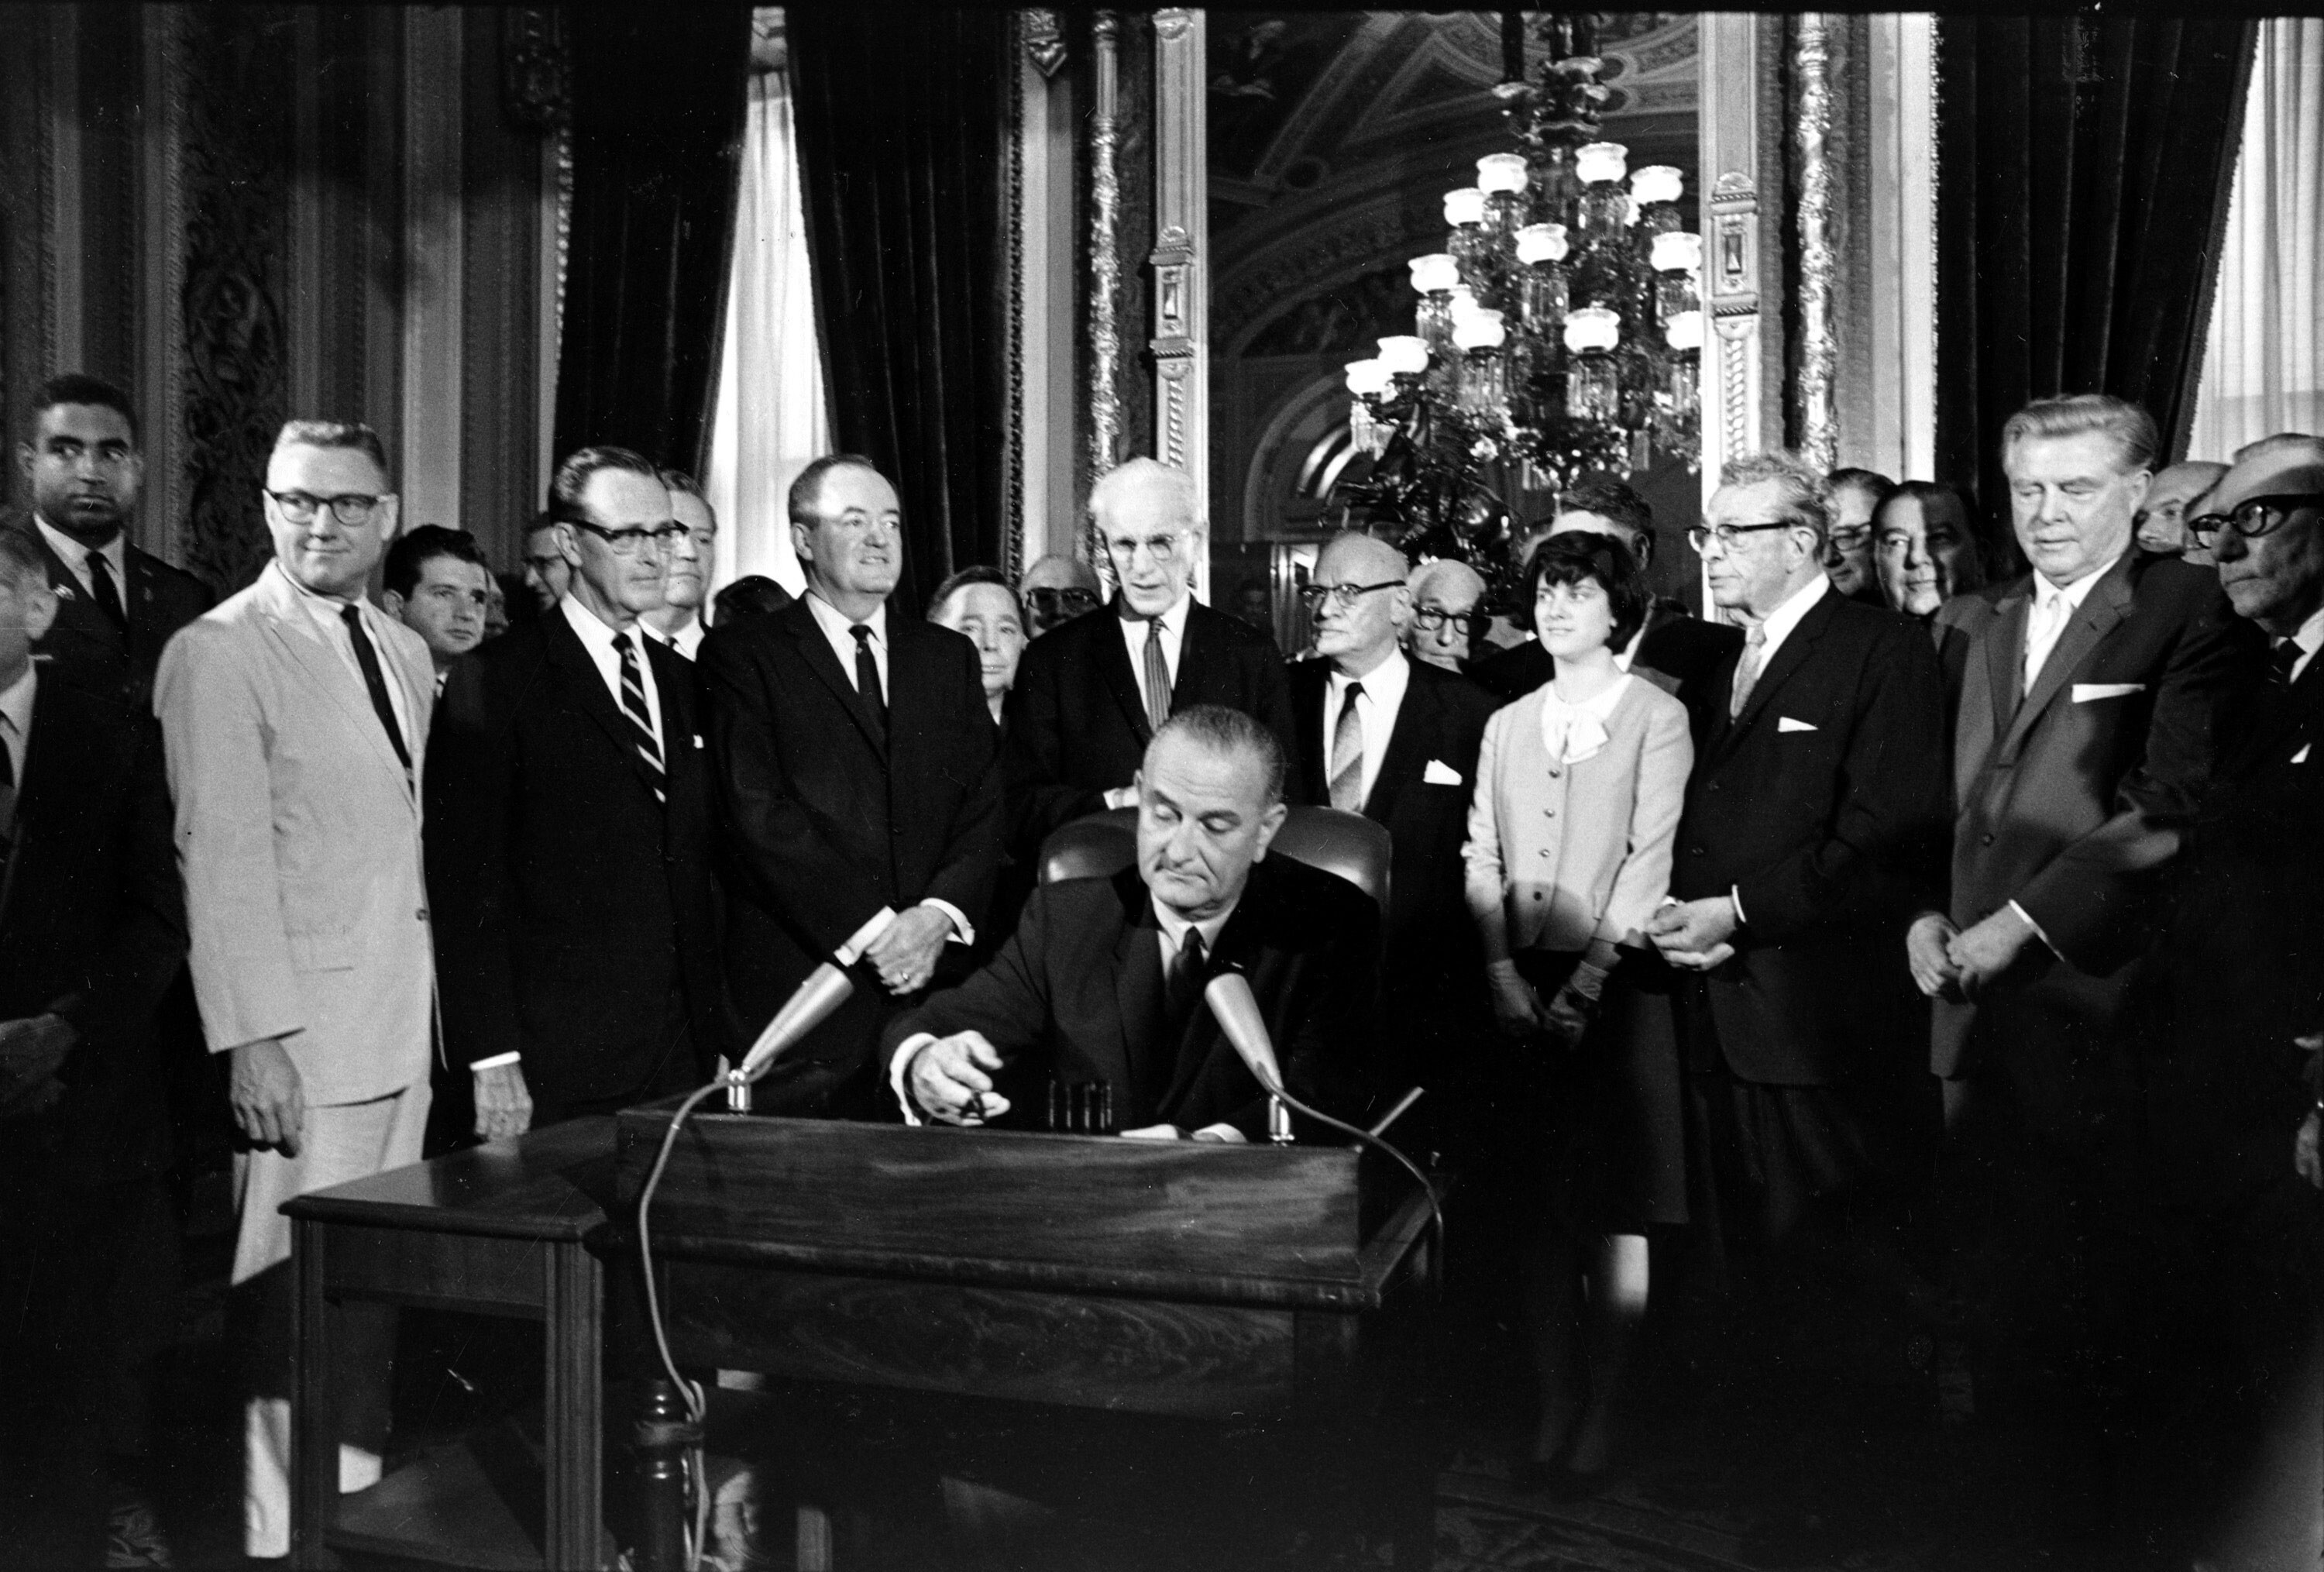 56 years after the Voting Rights Act of 1965, lawmakers struggle to find common ground